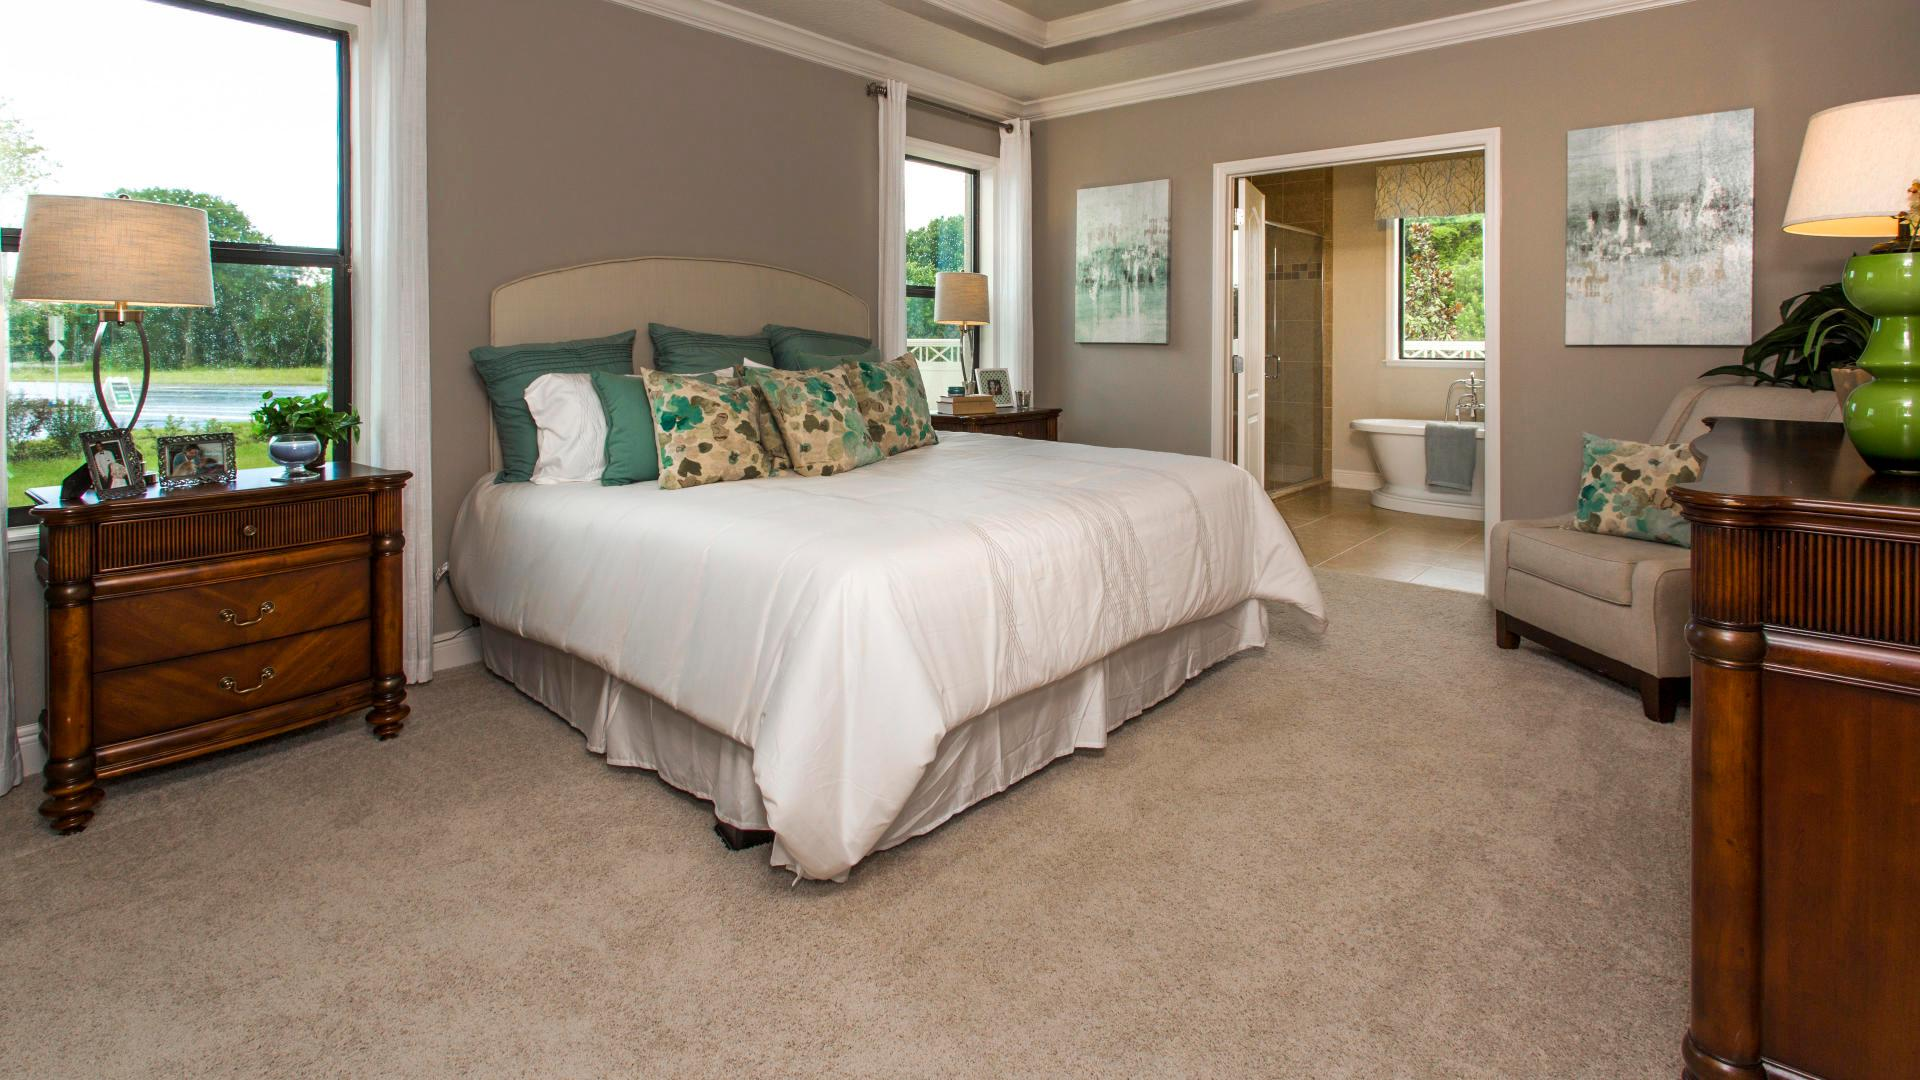 Bedroom featured in the Drexel By Maronda Homes in Tampa-St. Petersburg, FL